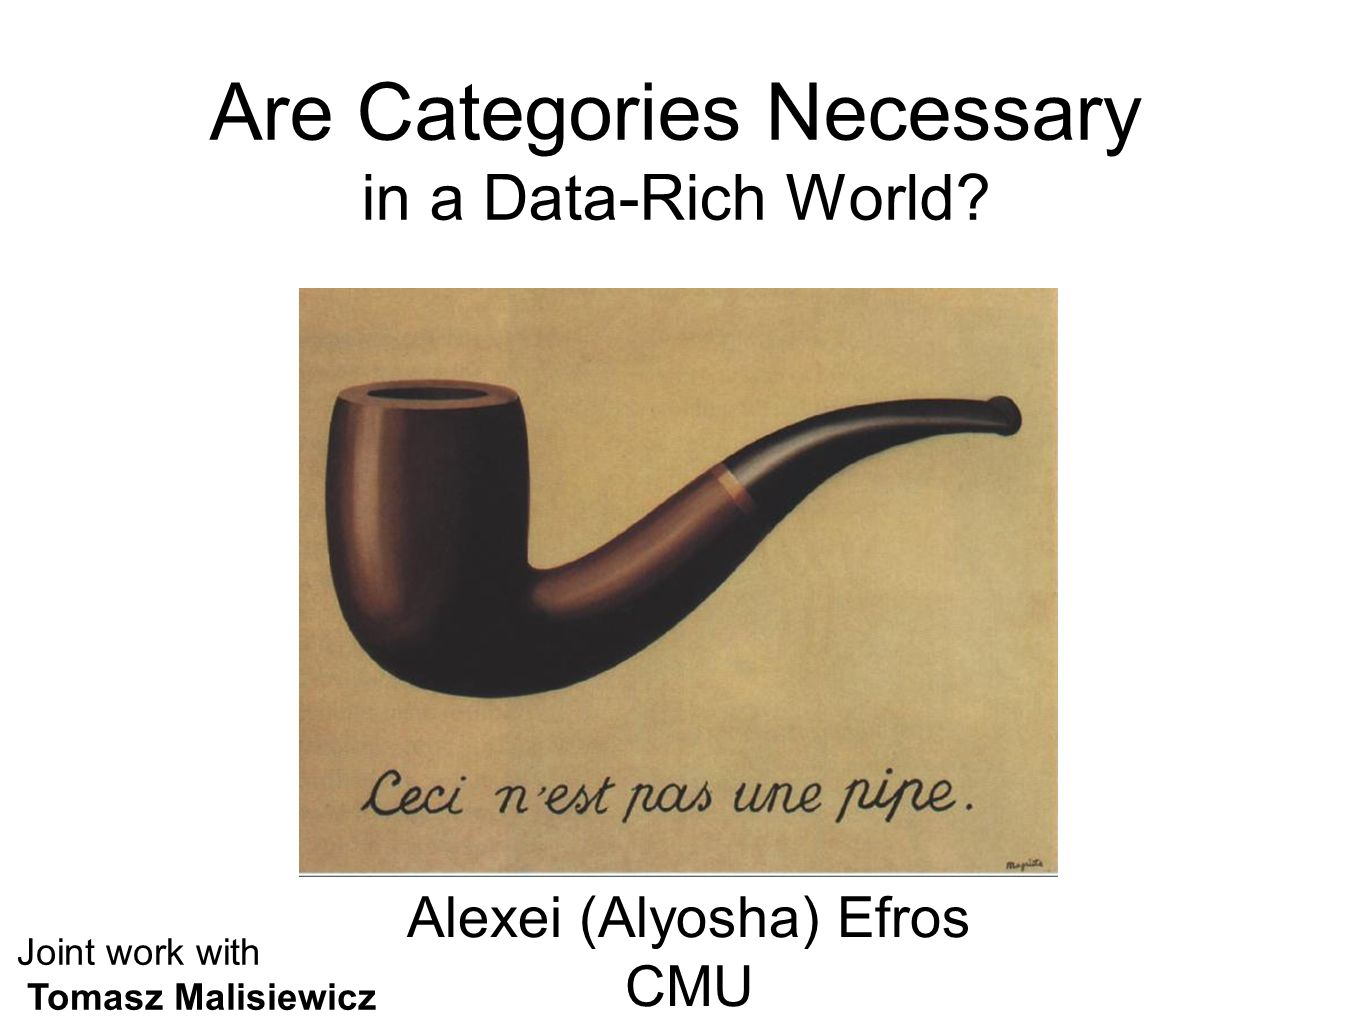 Are Categories Necessary in a Data-Rich World.